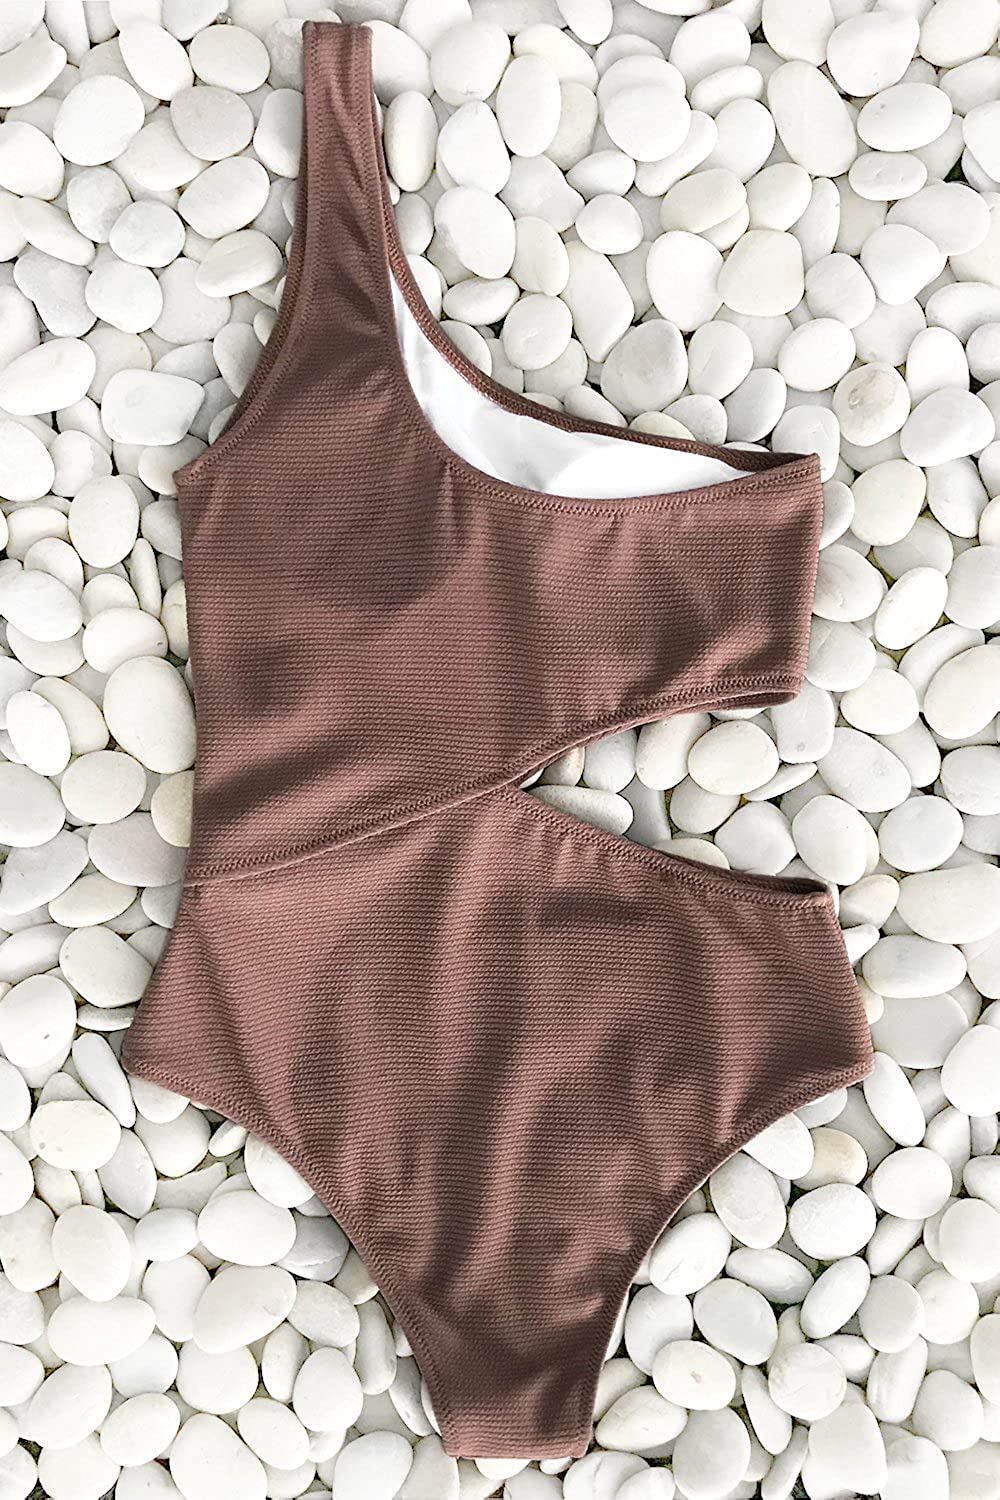 CUPSHE Womens Candy Rain One Shoulder One Piece Swimsuit Bathing Suit